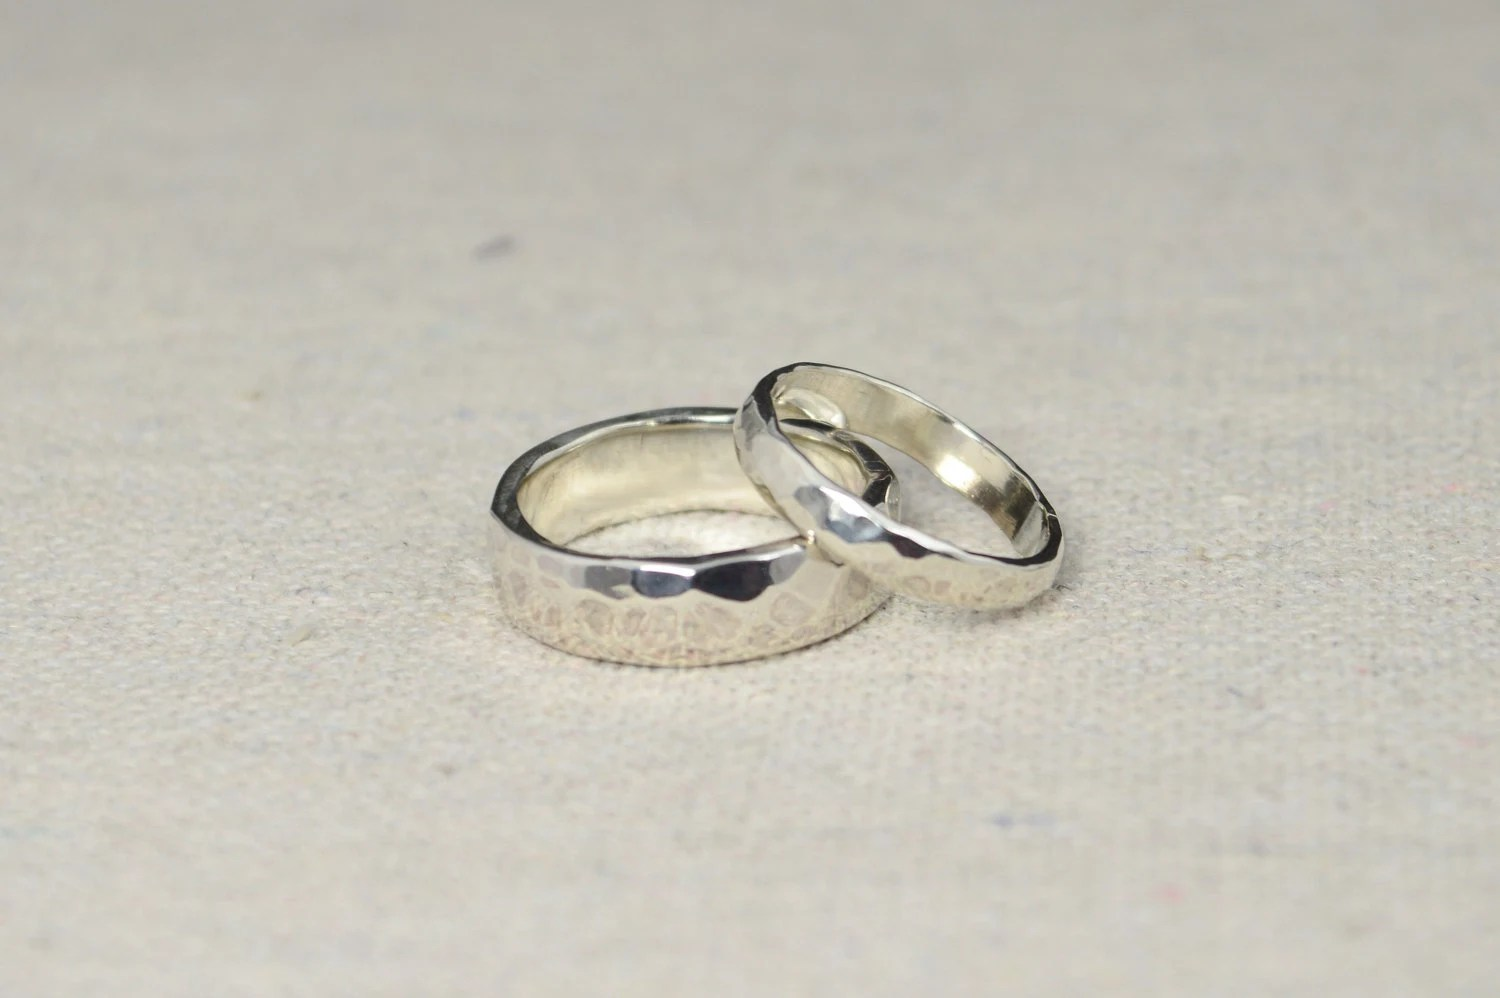 hammered silver wedding bands rustic wedding rings wedding ring set sterling silver inside ring engraving included inexpensive bands